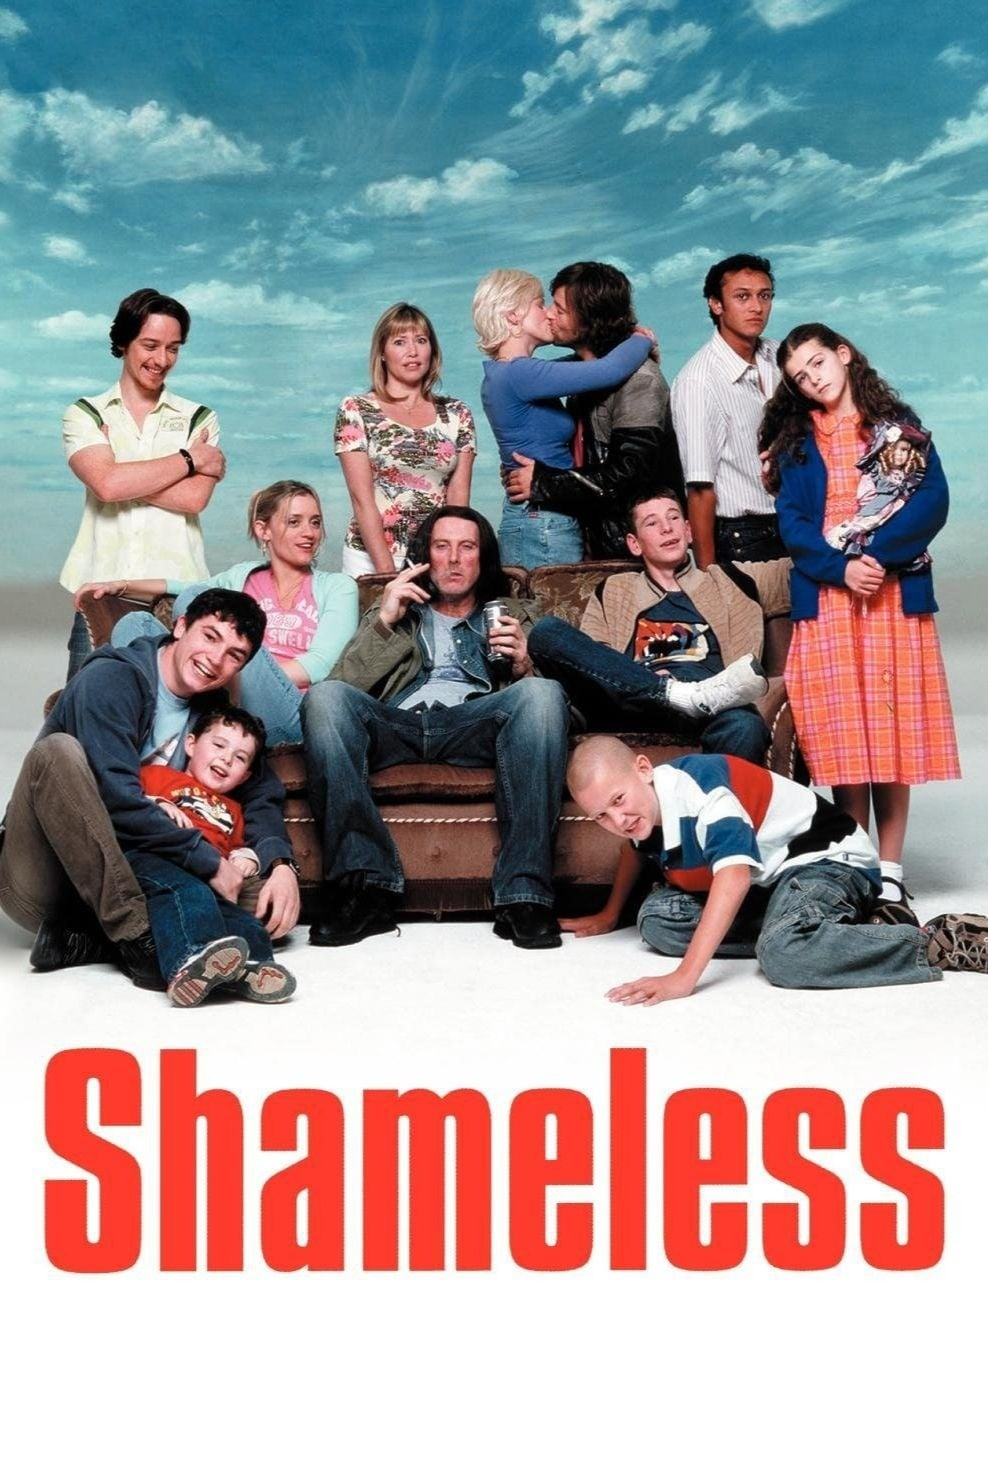 Shameless on FREECABLE TV